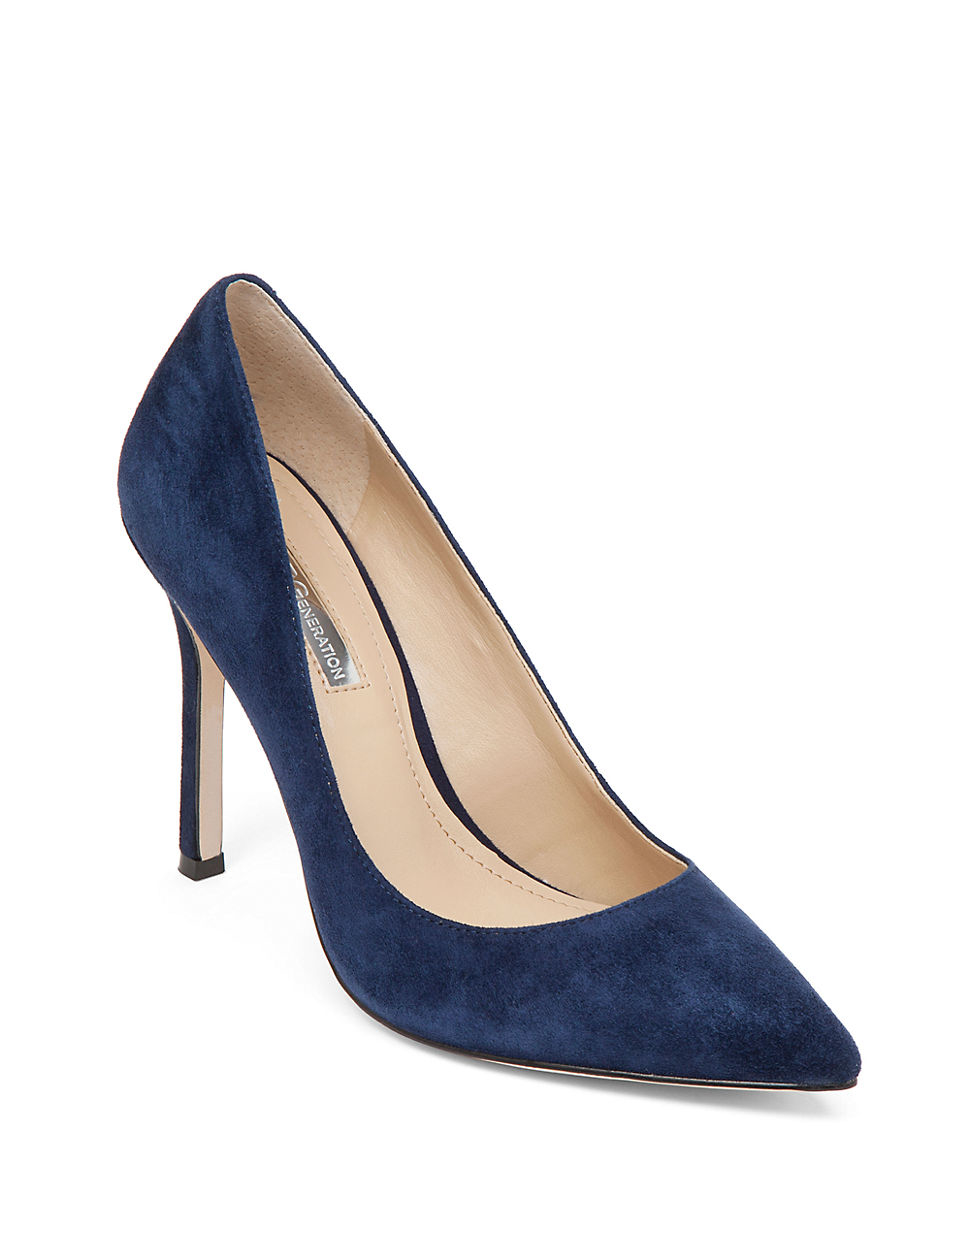 a5f130822d405 BCBGeneration Treasure Suede Pumps in Blue - Lyst